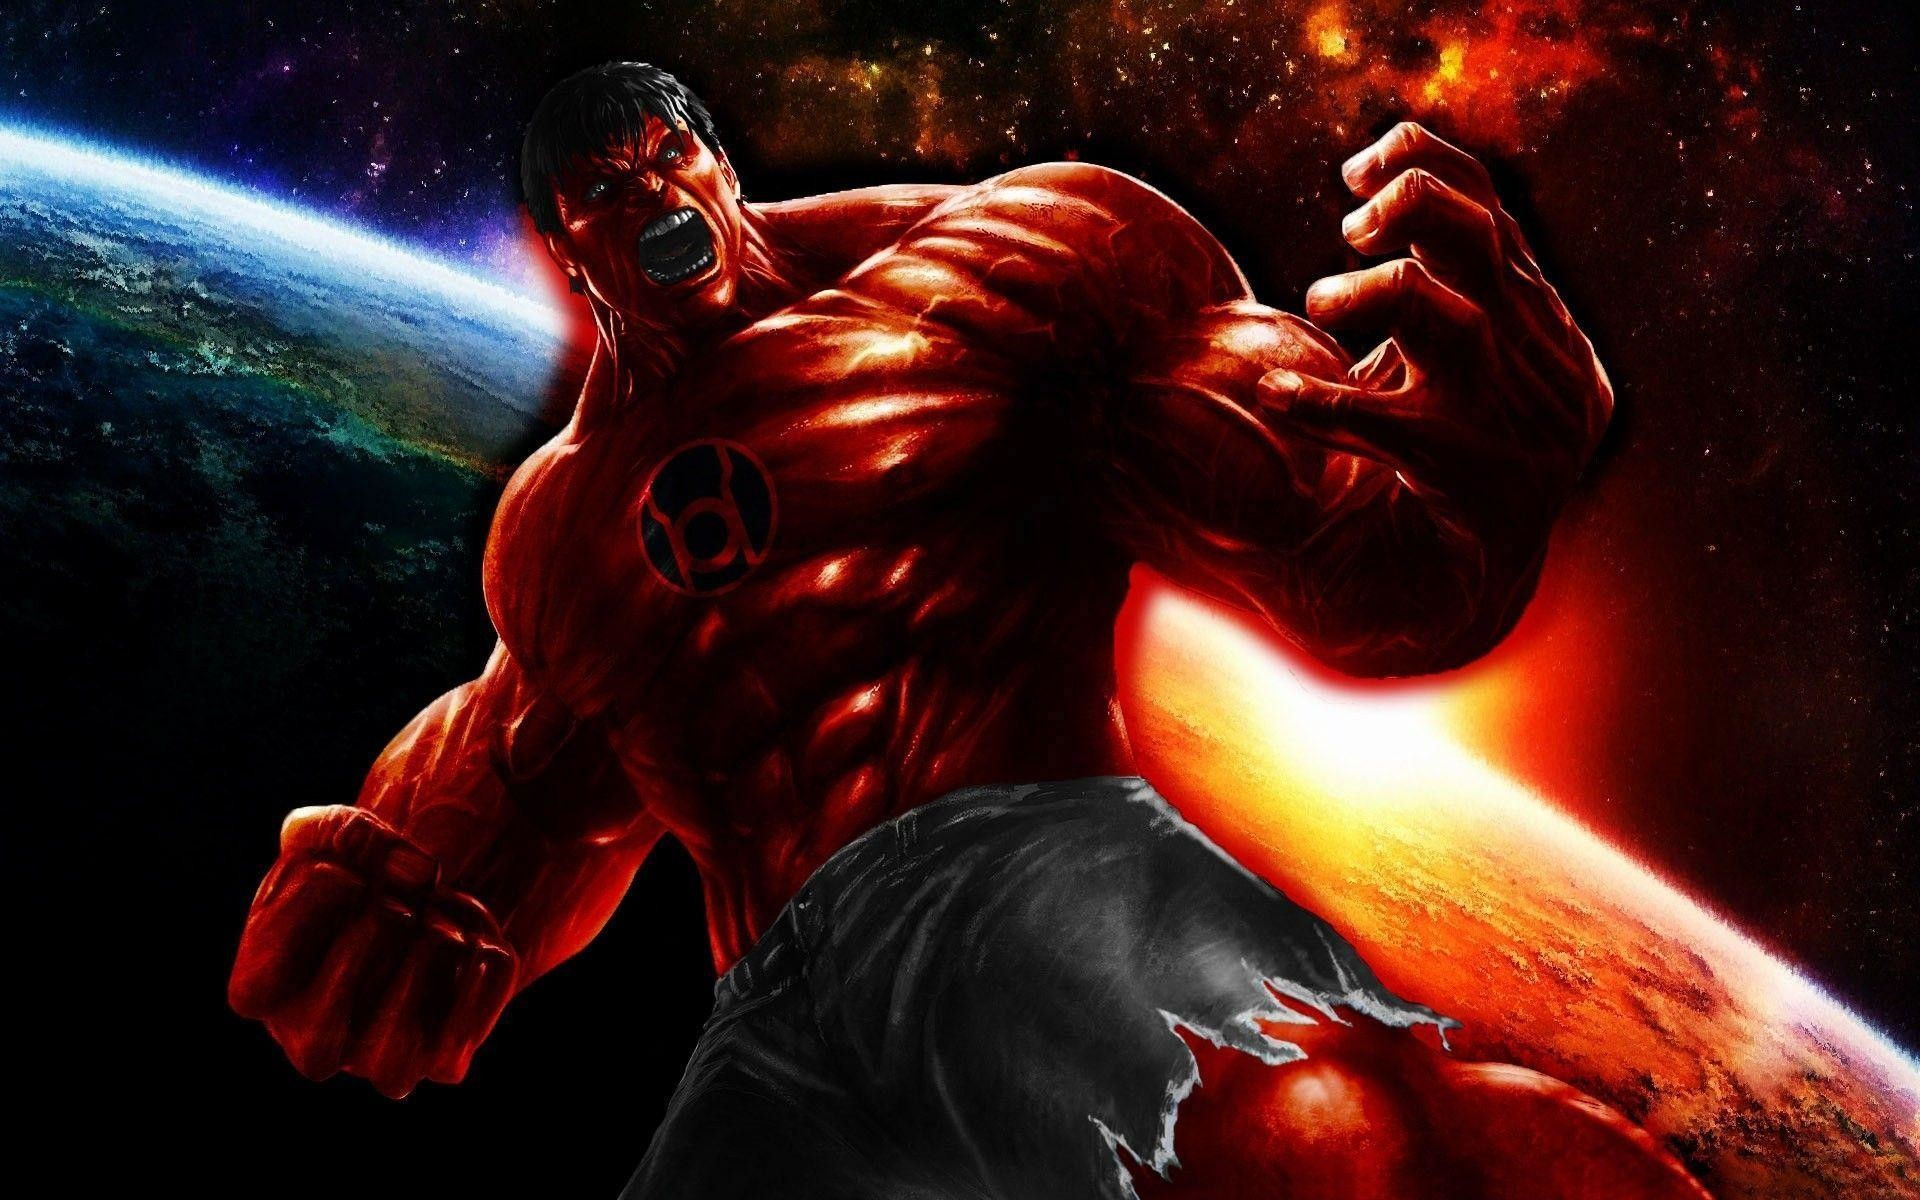 Red Hulk Wallpapers Hd Wallpaper Collections 4kwallpaper Wiki